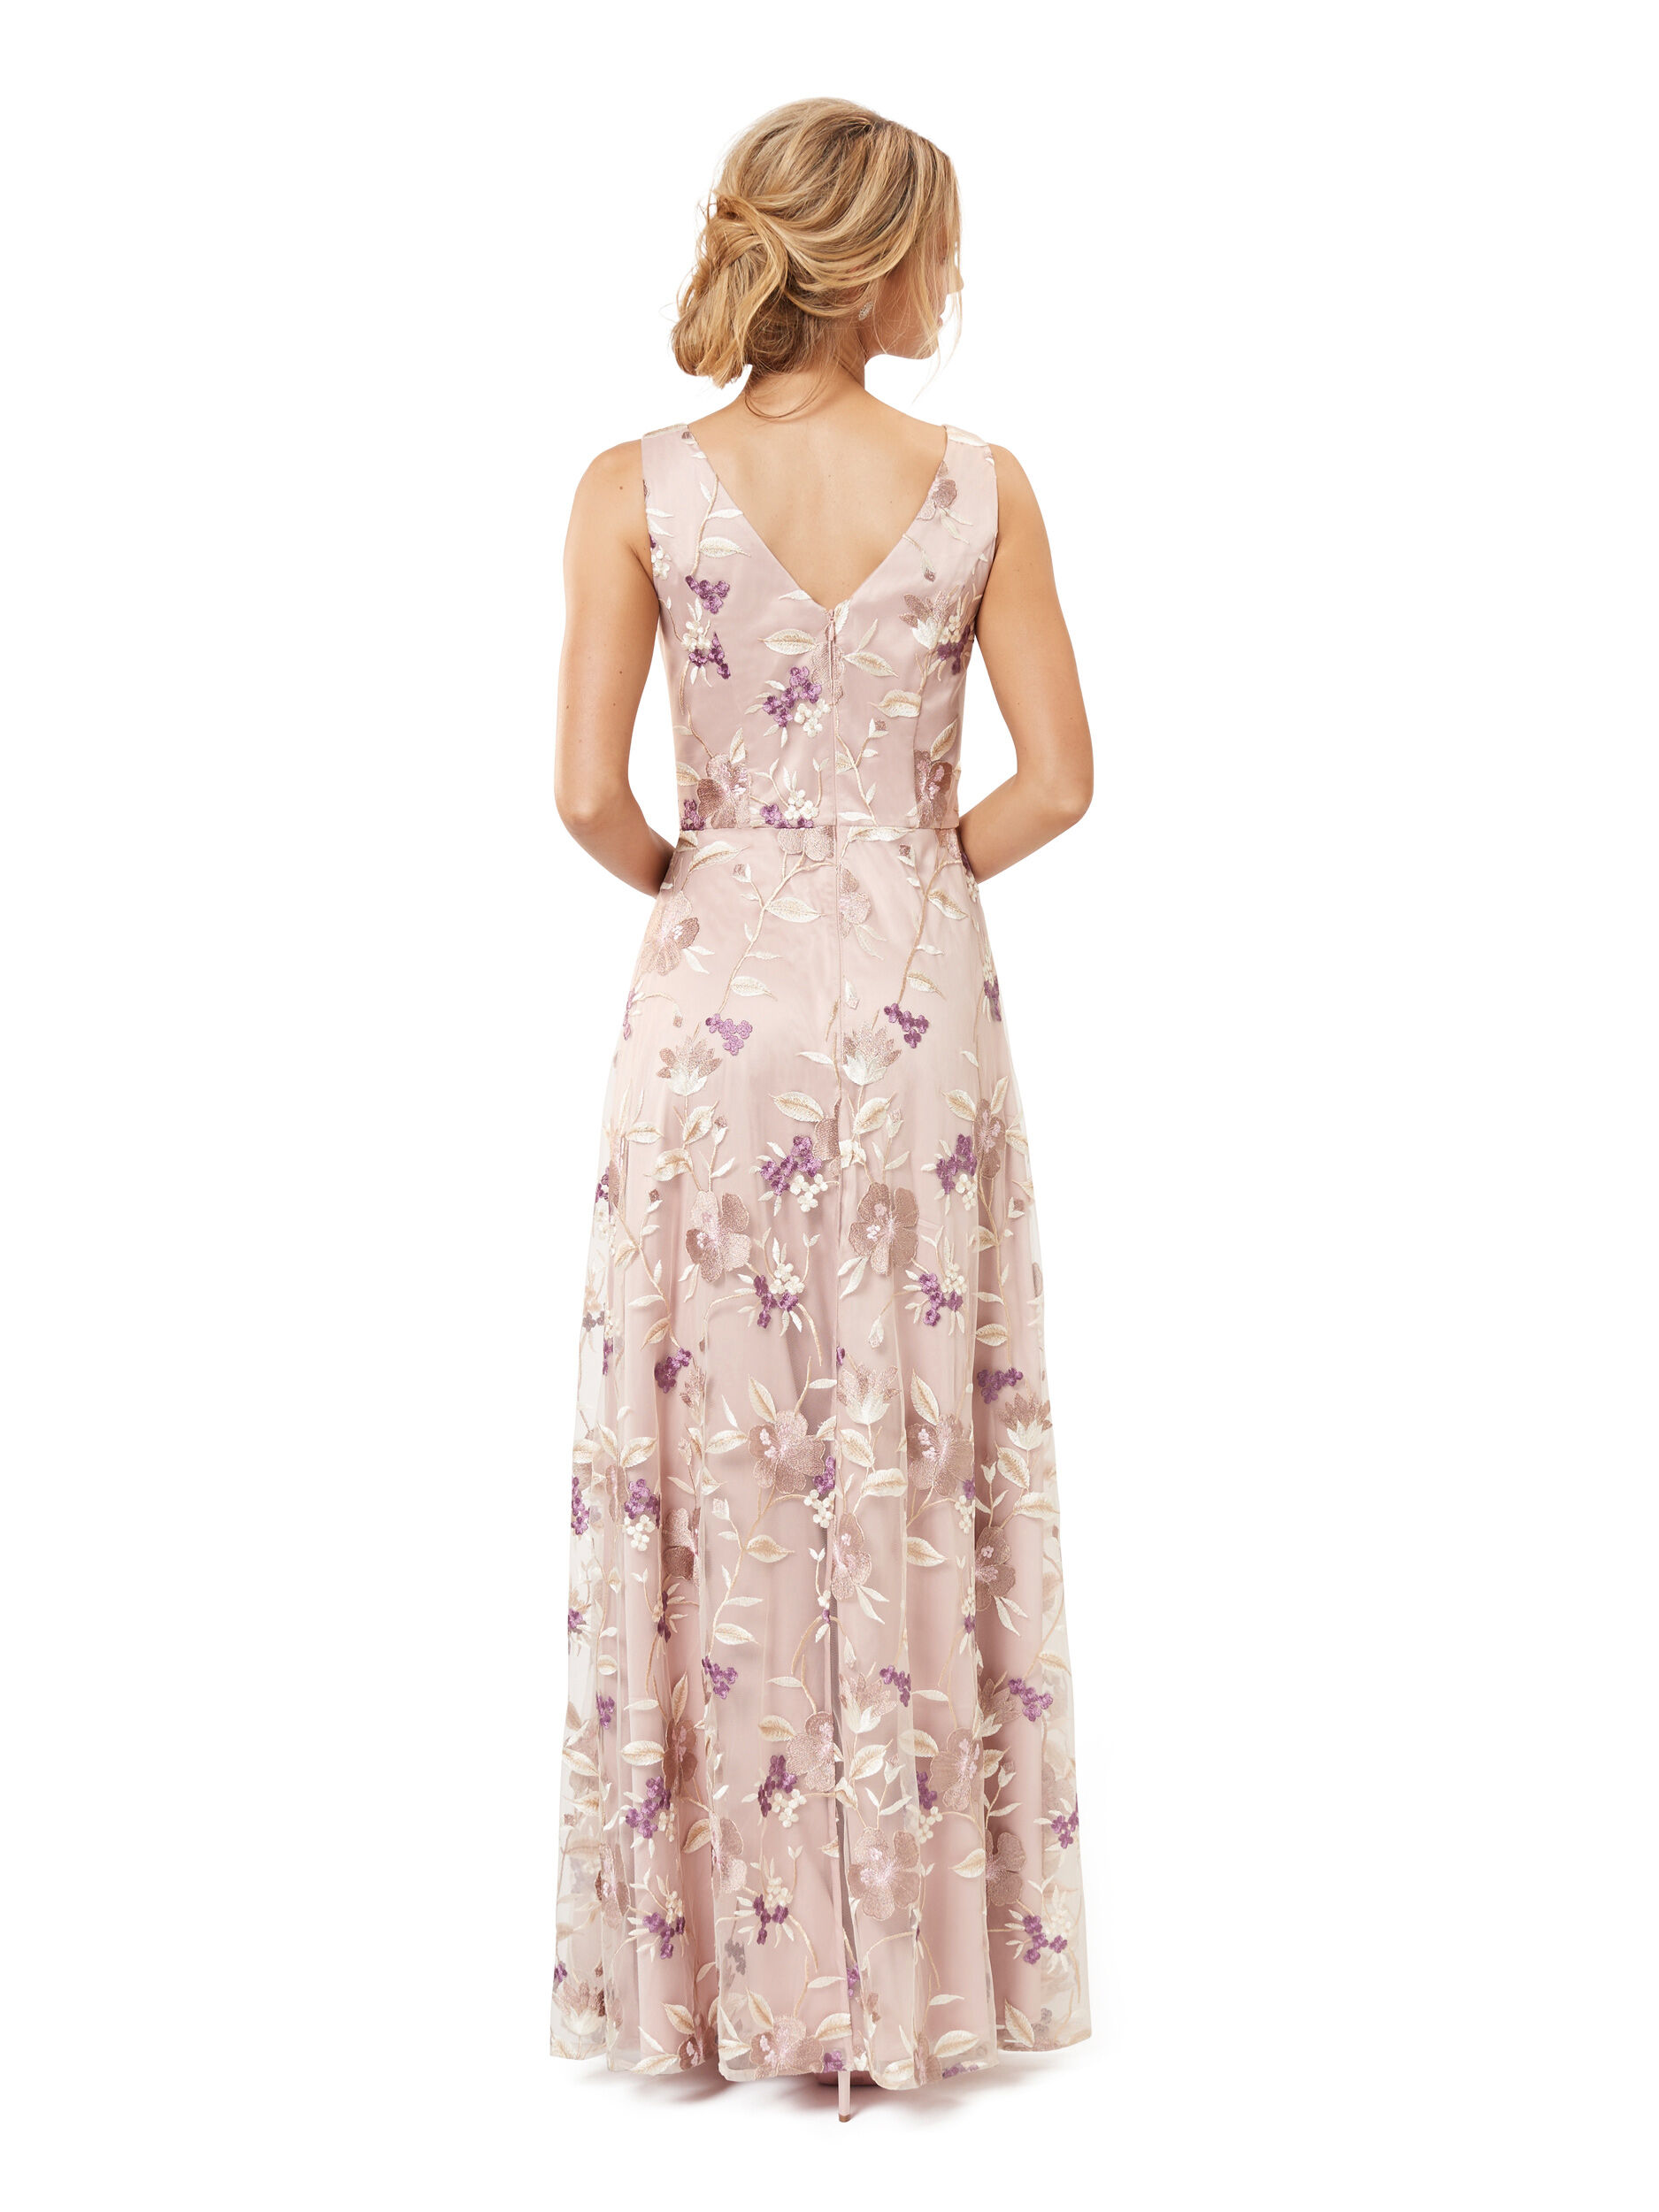 Bella Floral Maxi Dress